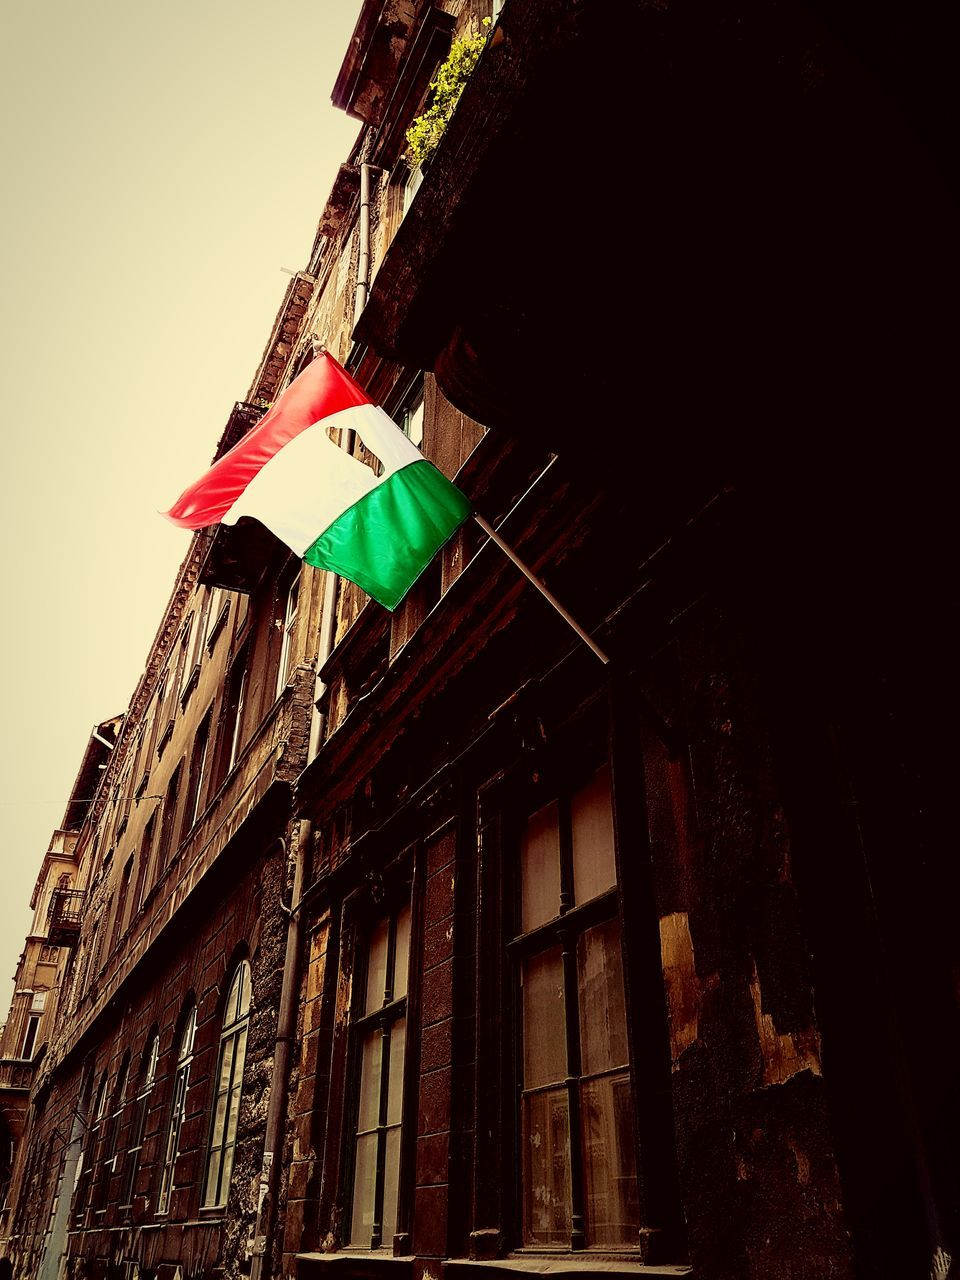 architecture, low angle view, built structure, flag, building exterior, no people, day, outdoors